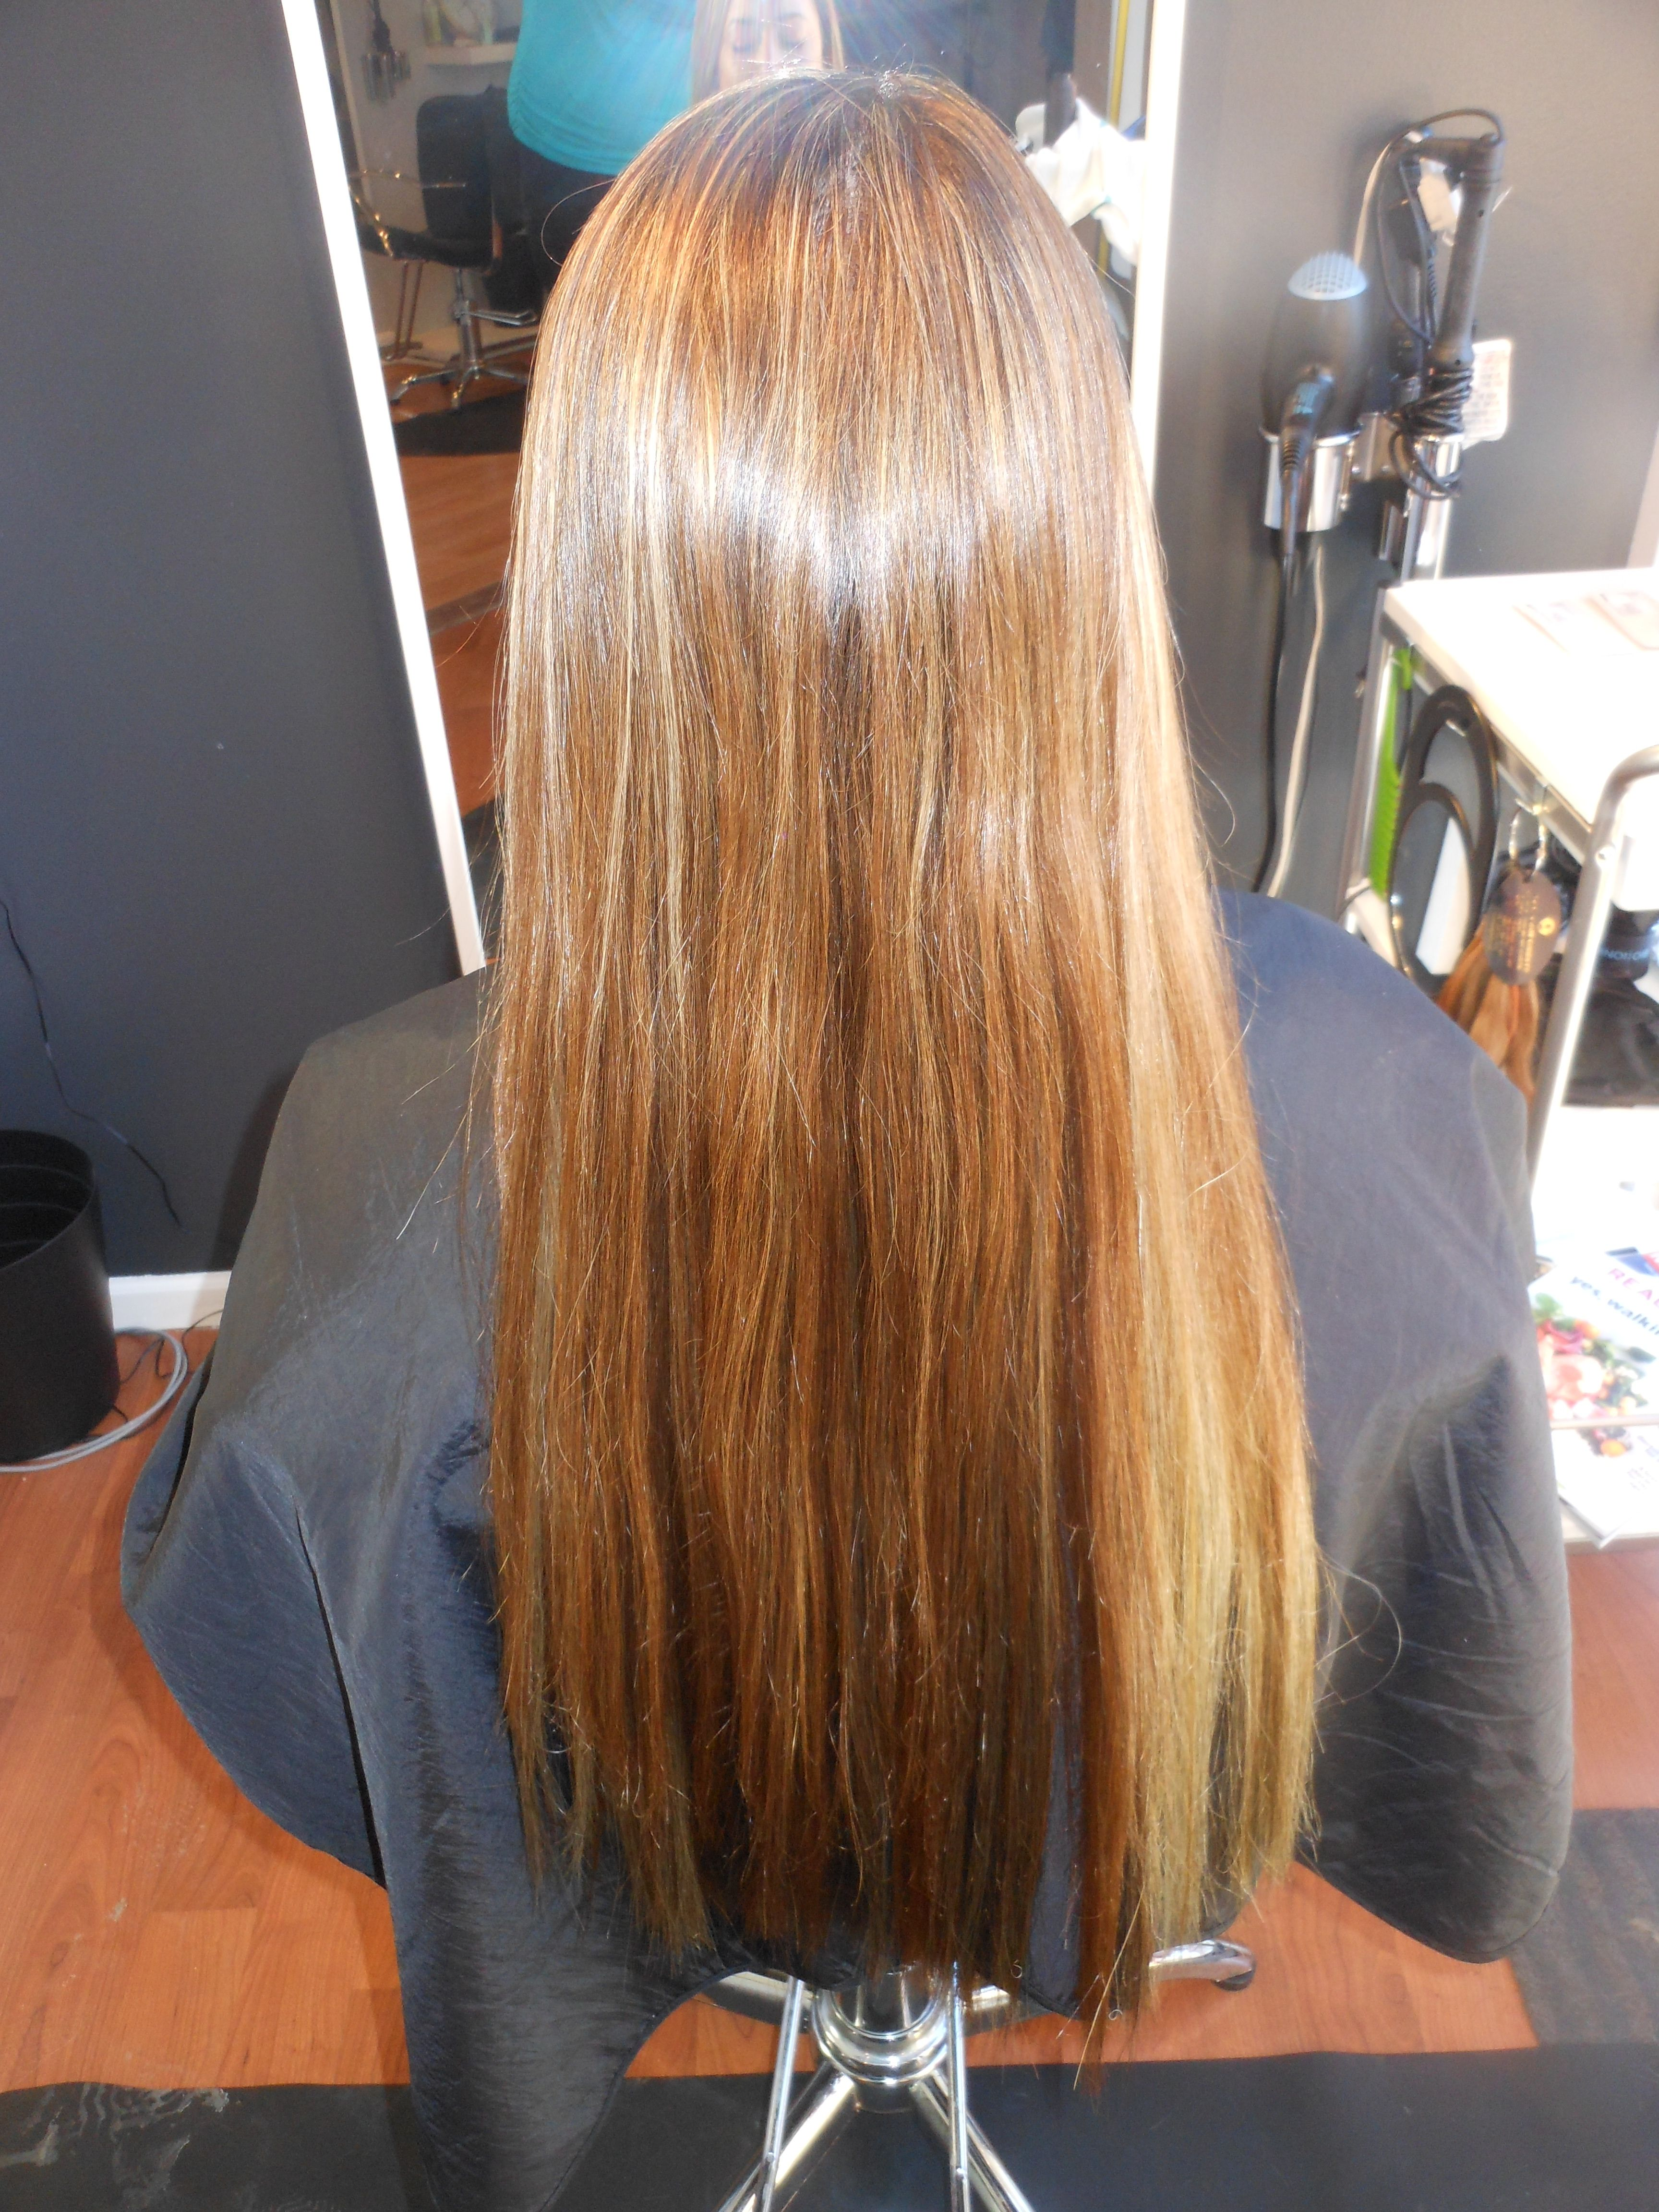 Pinch braids finished look extensions pinterest extensions pinch braids finished look pmusecretfo Gallery